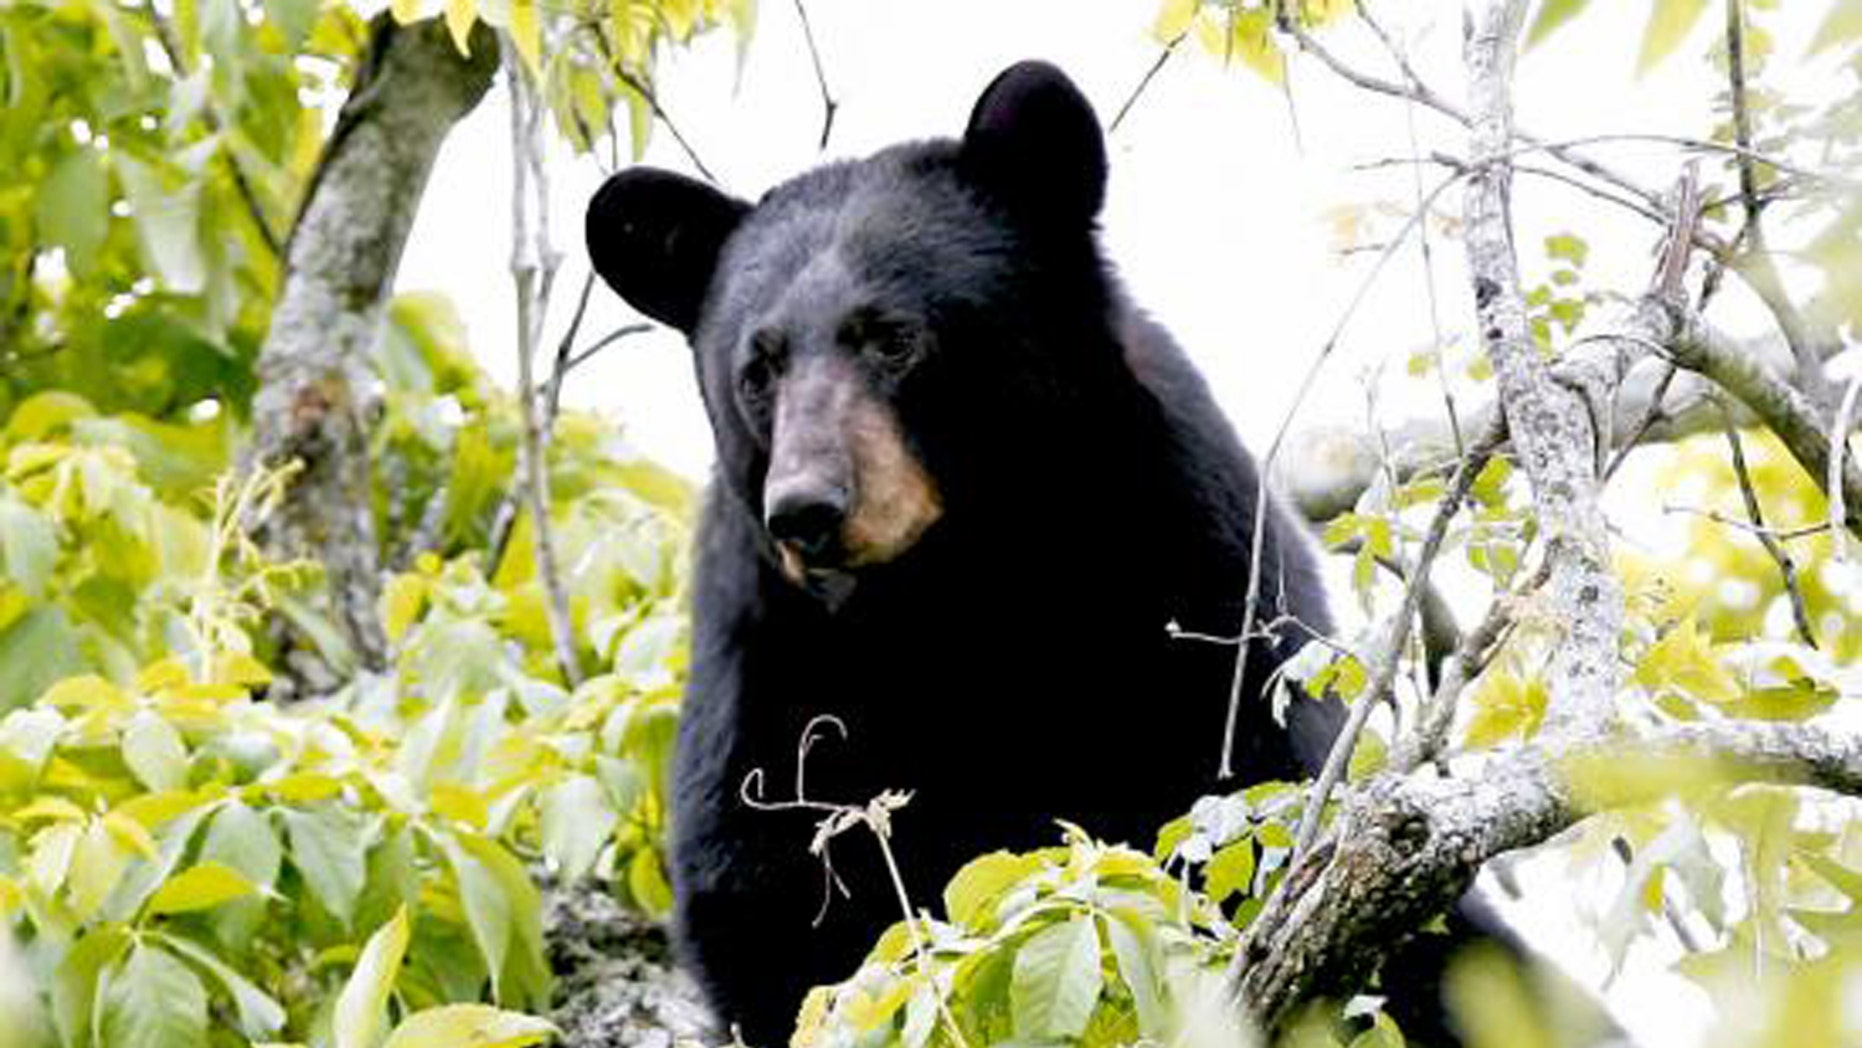 File photo - A black bear is shown in this undated handout photo provided by the State of Louisiana Department of Wildlife and Fisheries, March 10, 2016. (REUTERS/State of Louisiana Department of Wildlife and Fisheries/Handout via Reuters)